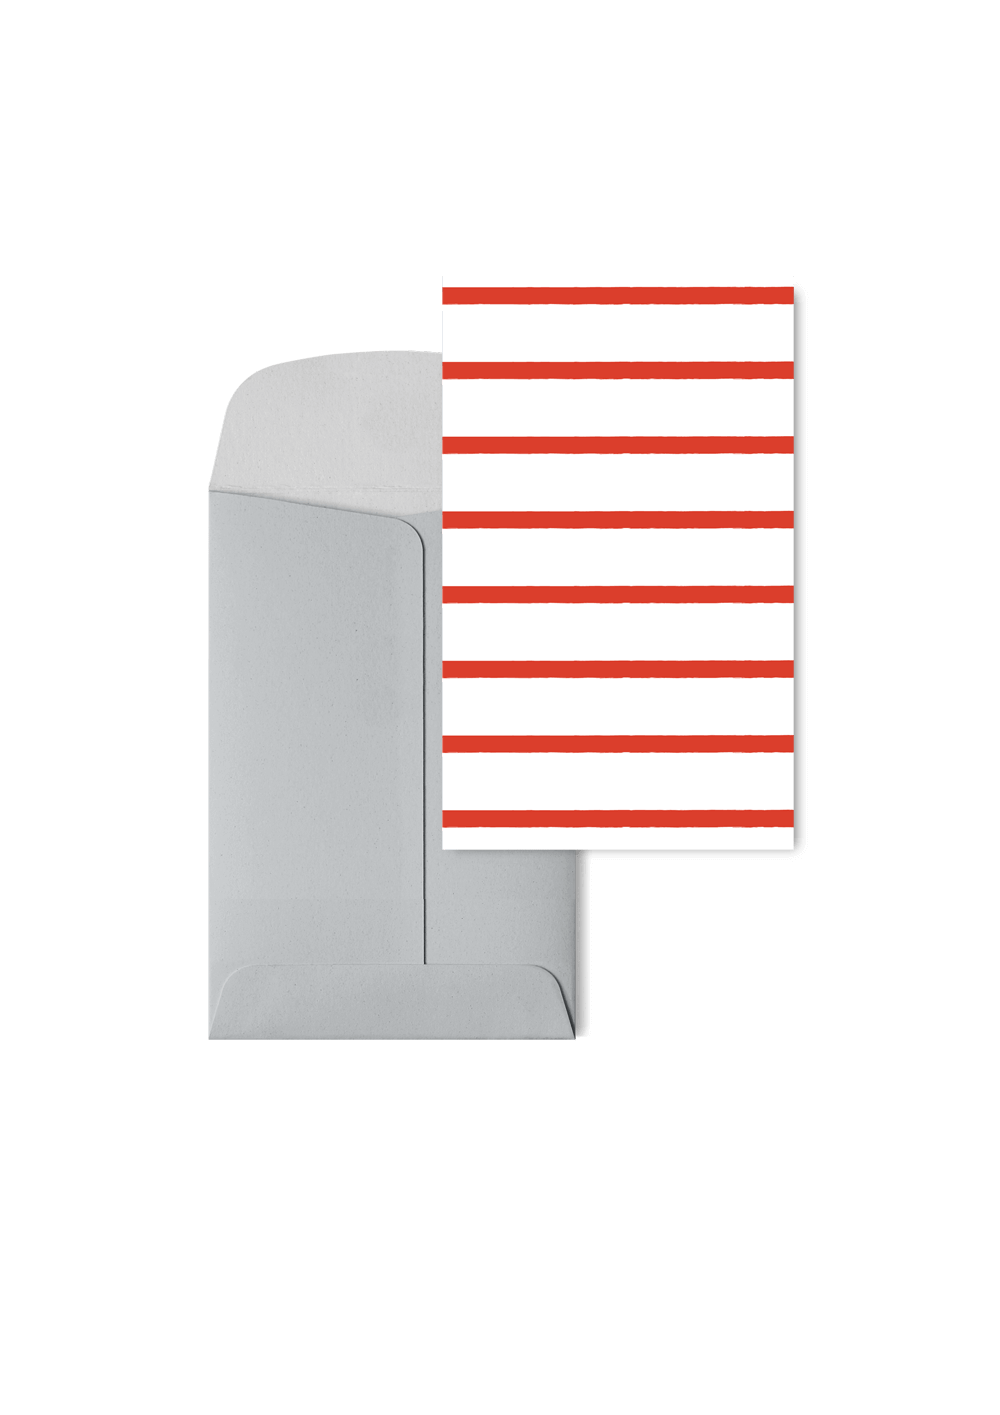 Stripetown Red, 6 Karten Set by Karten Design Fabrik. Supplier of designer Greeting Cards, Gift Wrap, Christmas Cards & Invitations to leading design stores including Connox, Modulor, Magazin & Manufactum.